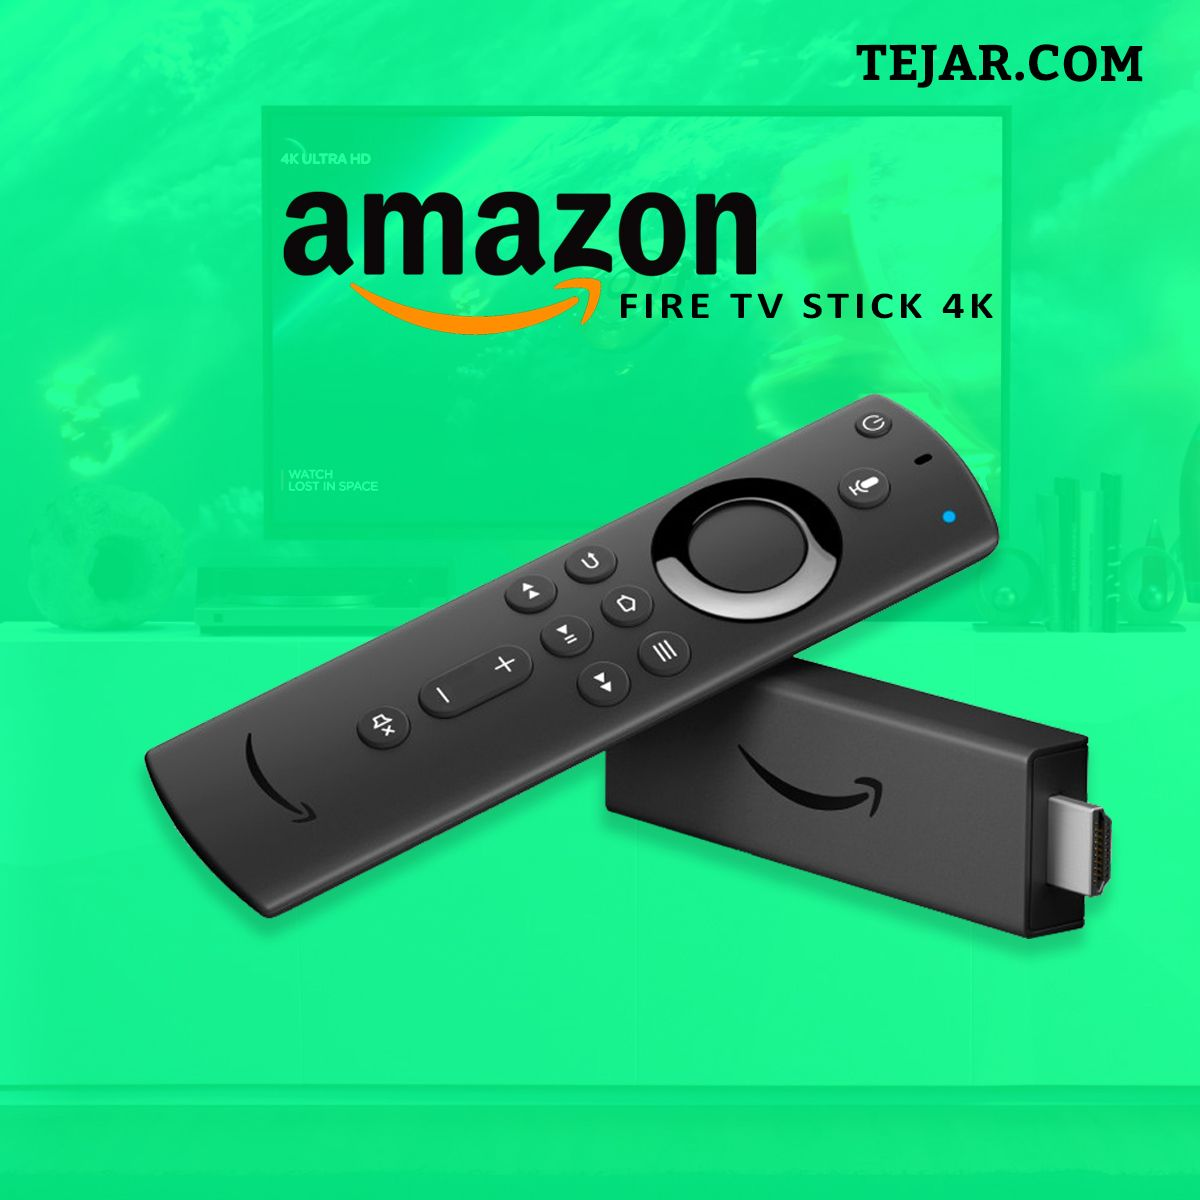 Fire Tv Stick 4k Has More Storage For Apps And Games Than Any